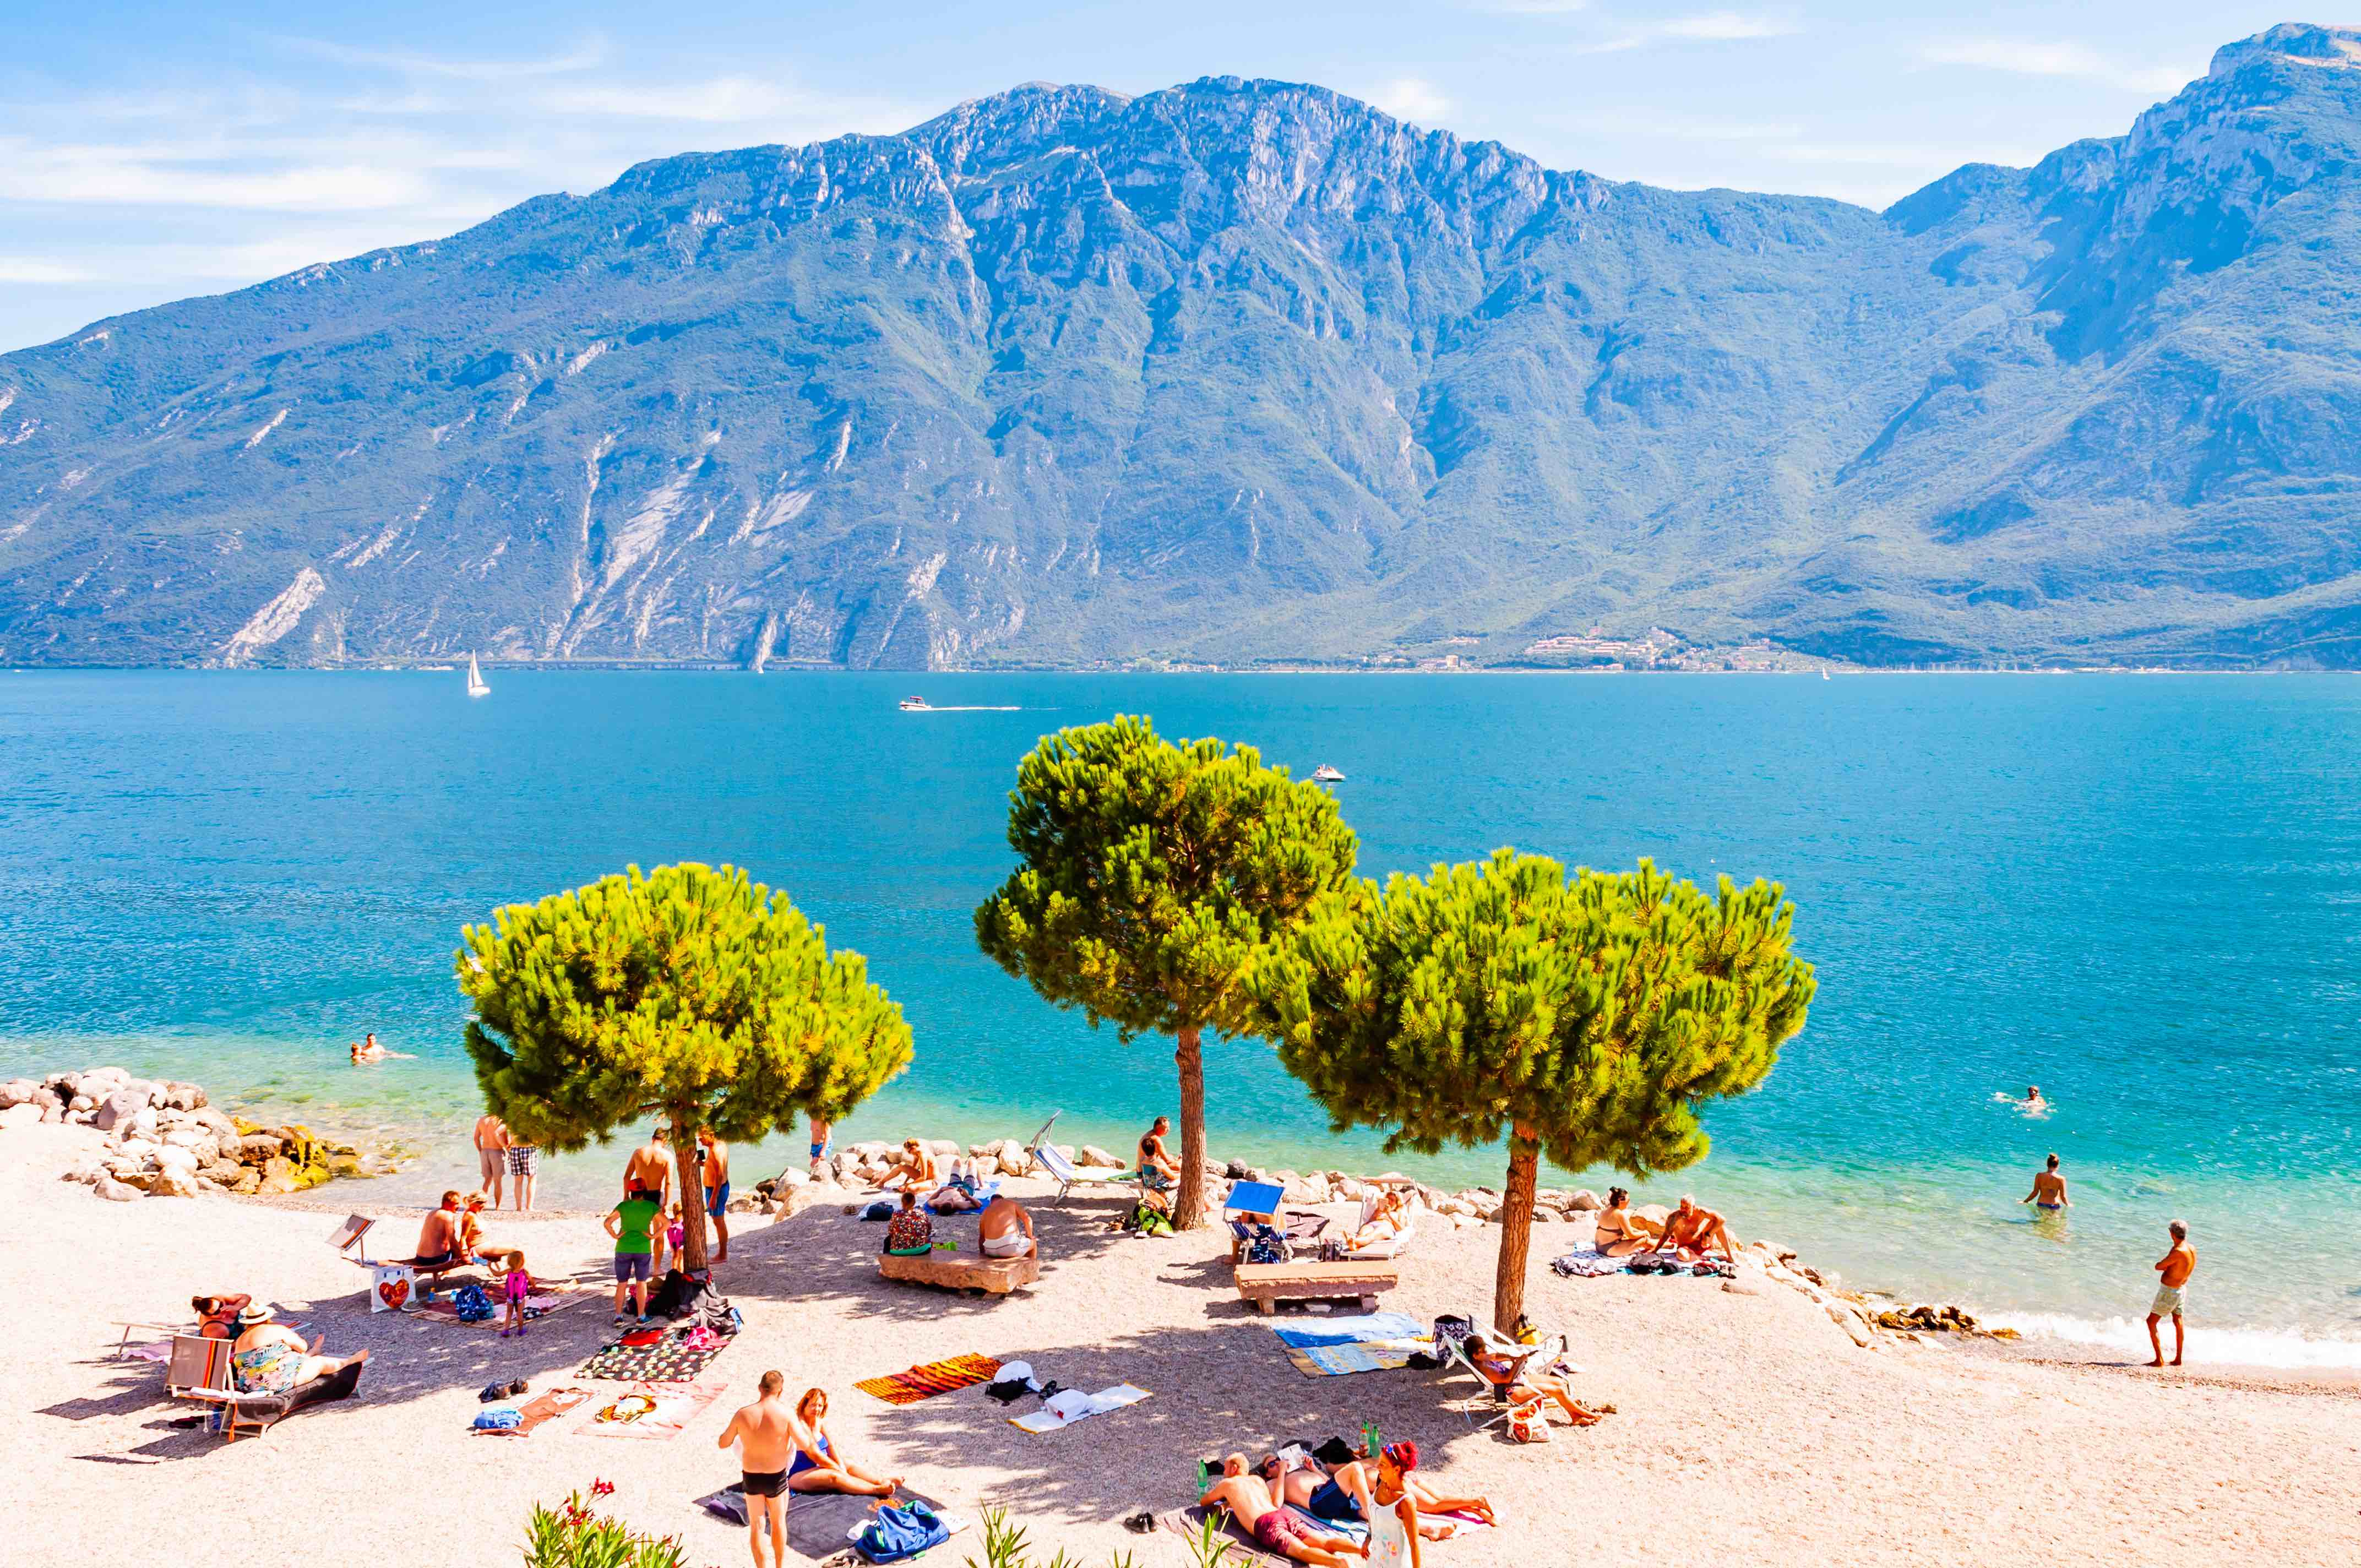 The sapphire shores of Italy's Lake Garda during the height of summer - will you end up here?